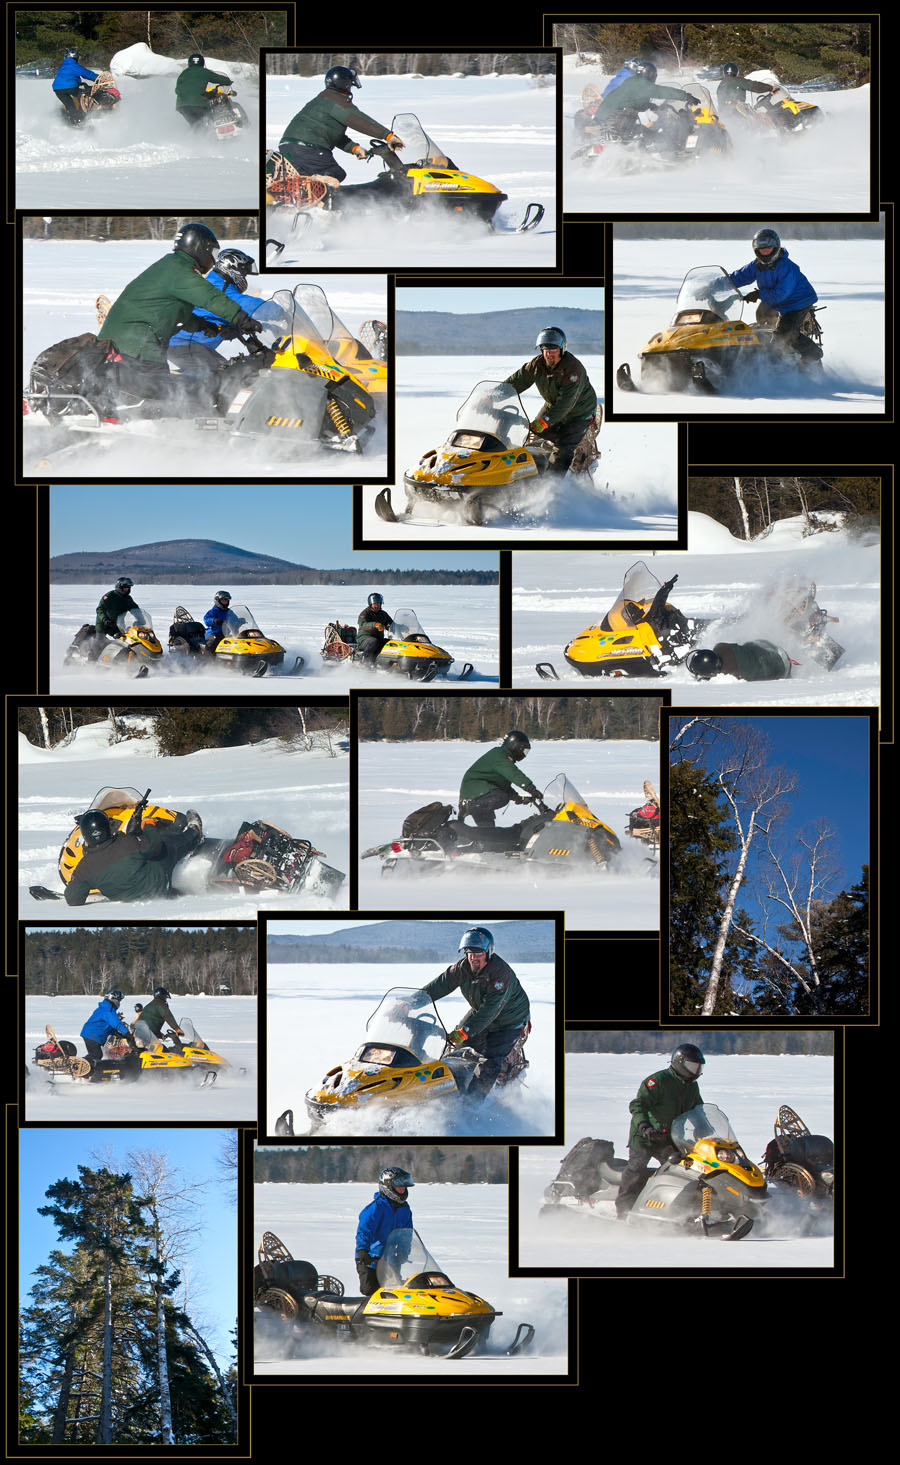 The Bear Crew on Snowmobiles - Fifth Machias Lake